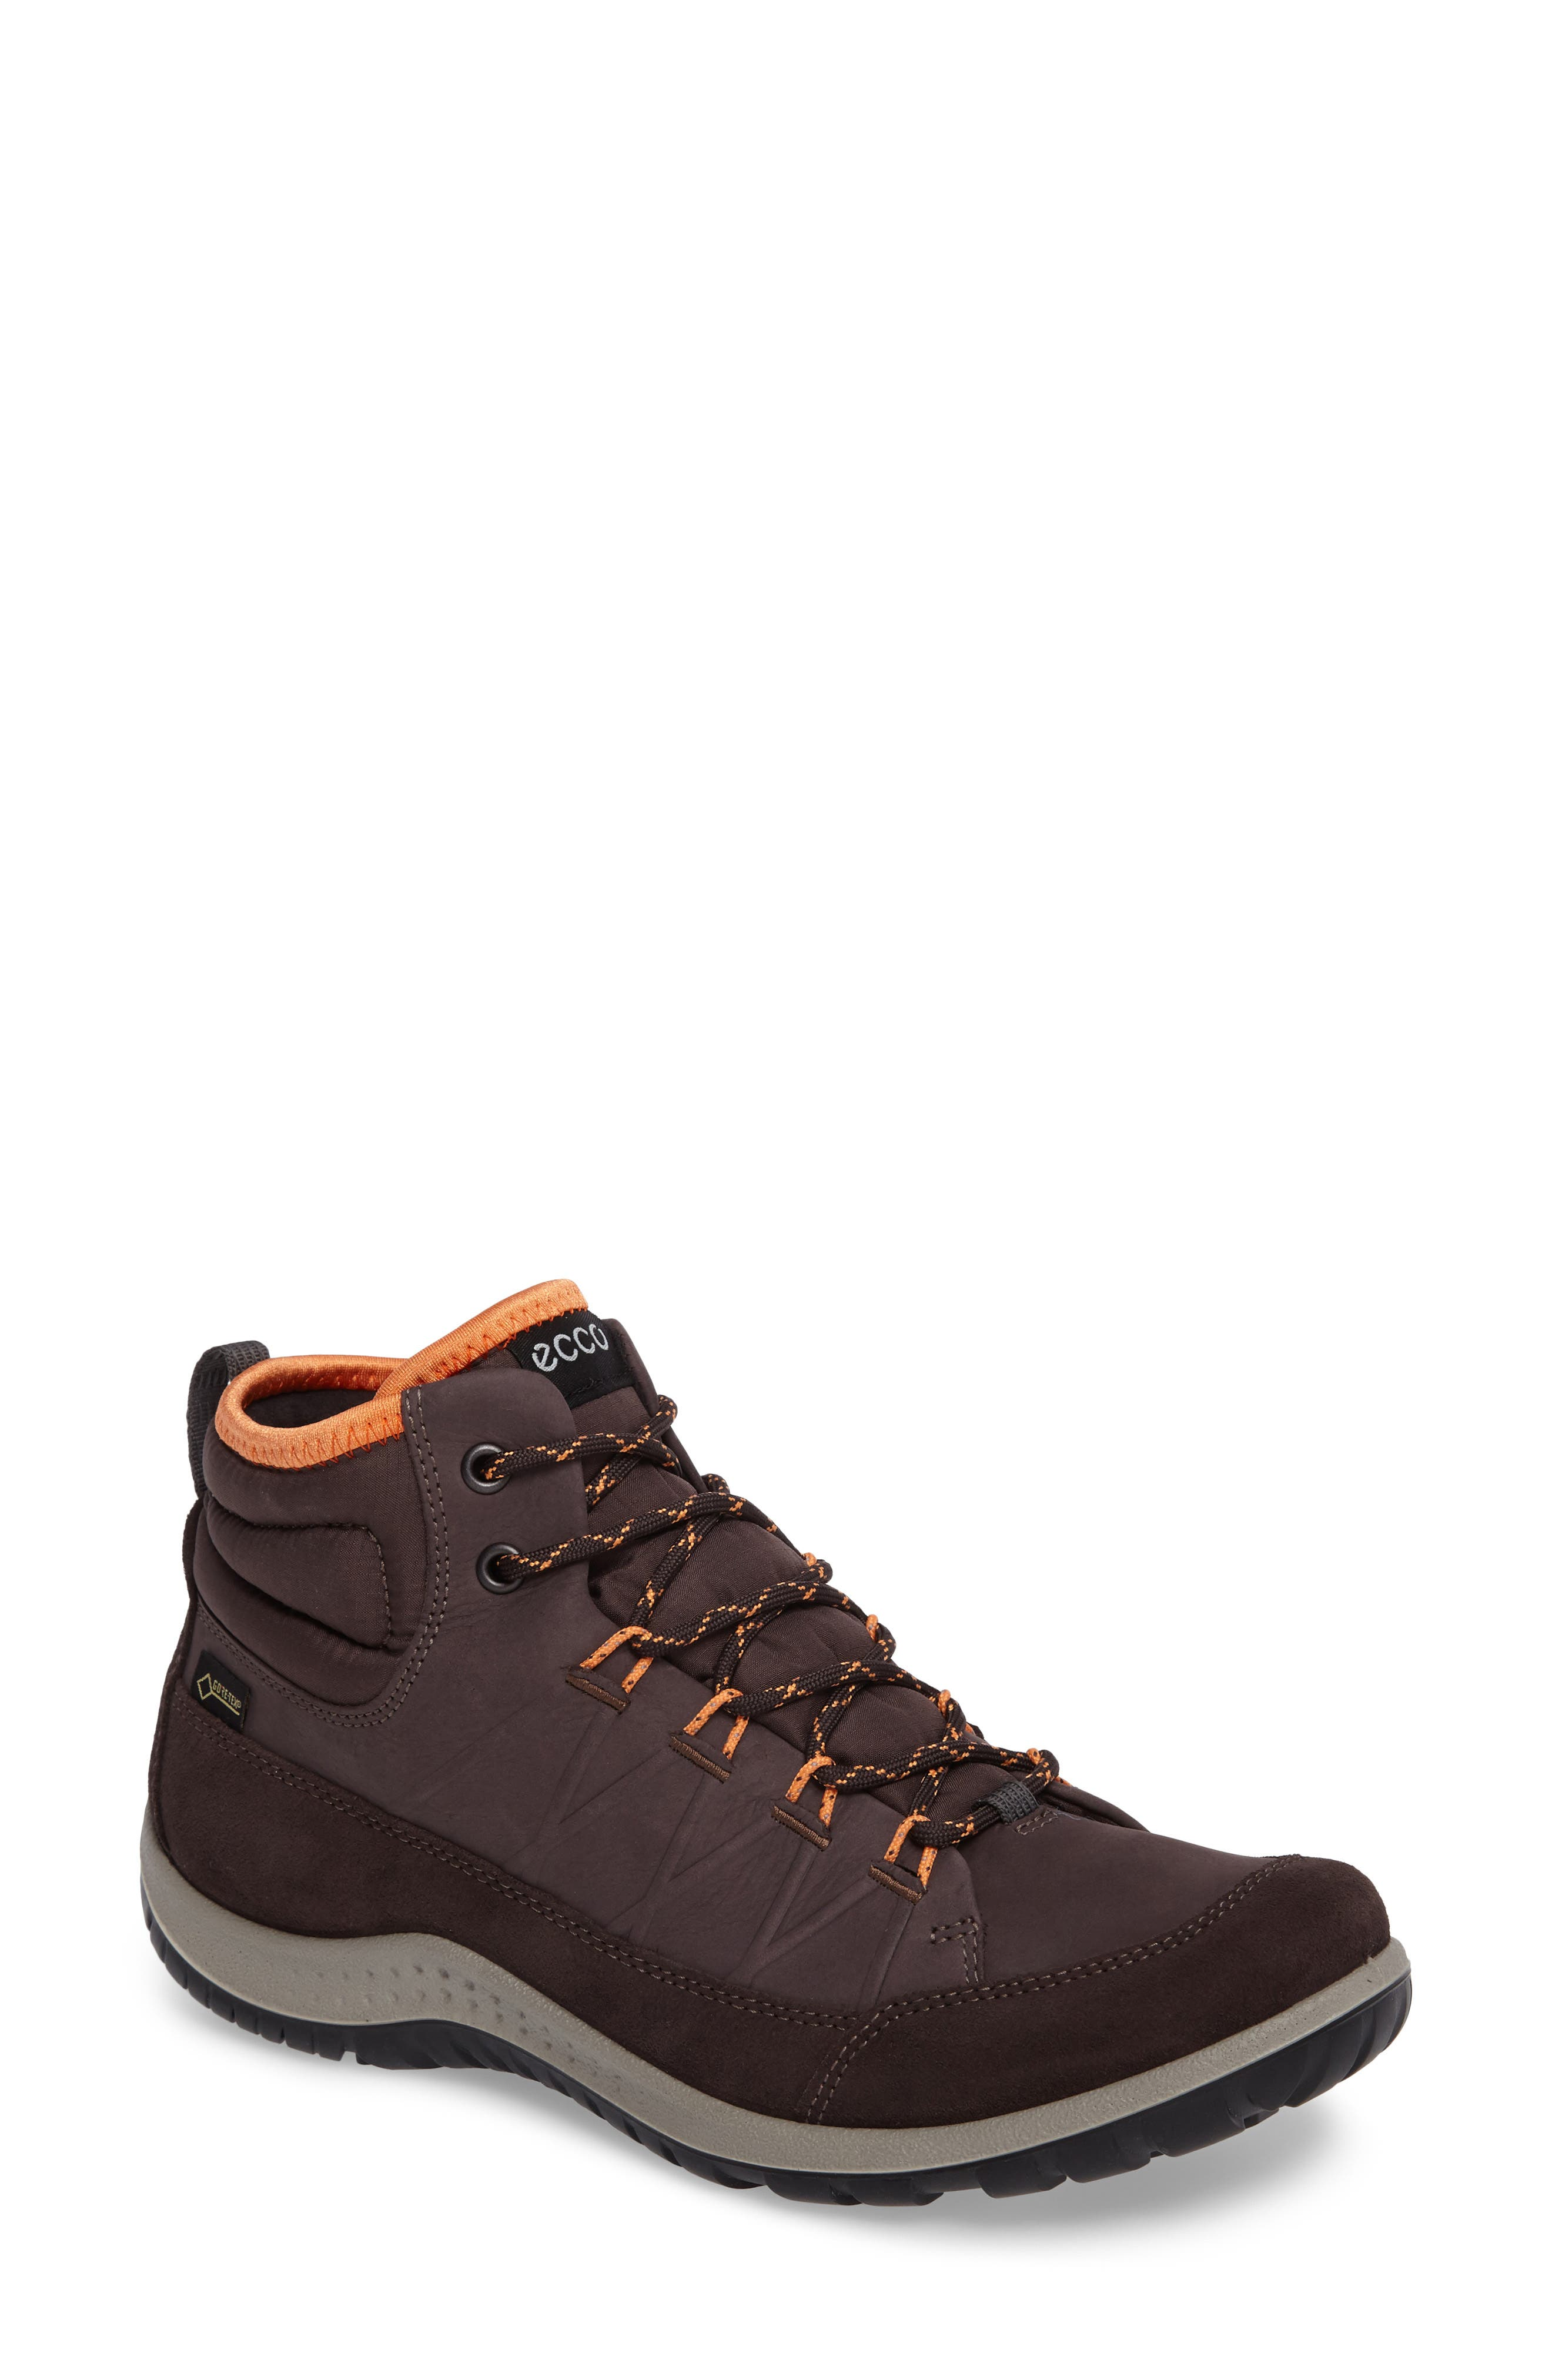 'Aspina GTX' Waterproof High Top Shoe,                         Main,                         color, SHALE LEATHER